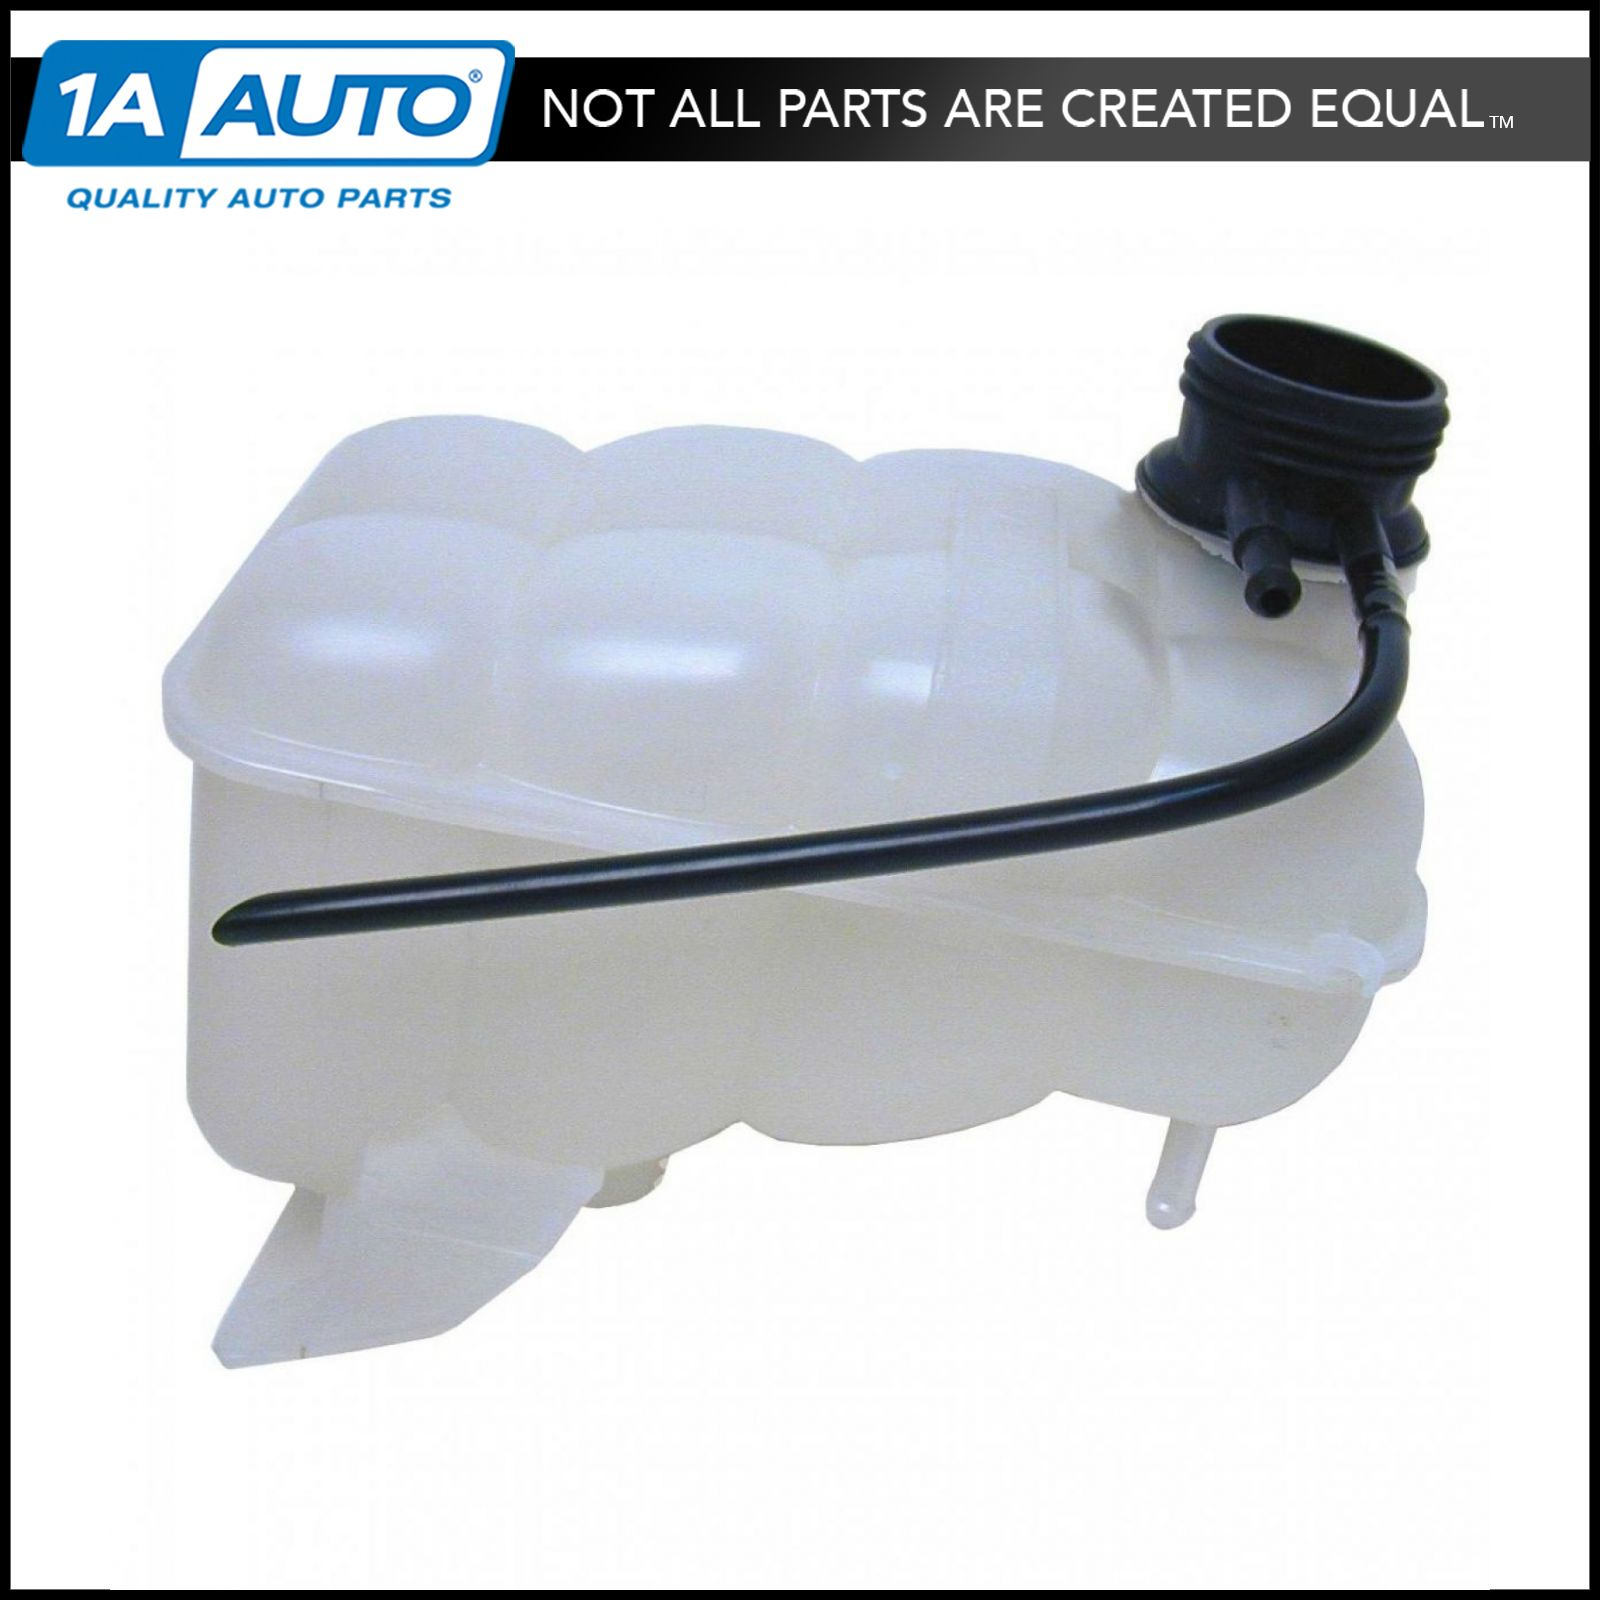 Radiator Coolant Overflow Reservoir Bottle Tank For Land